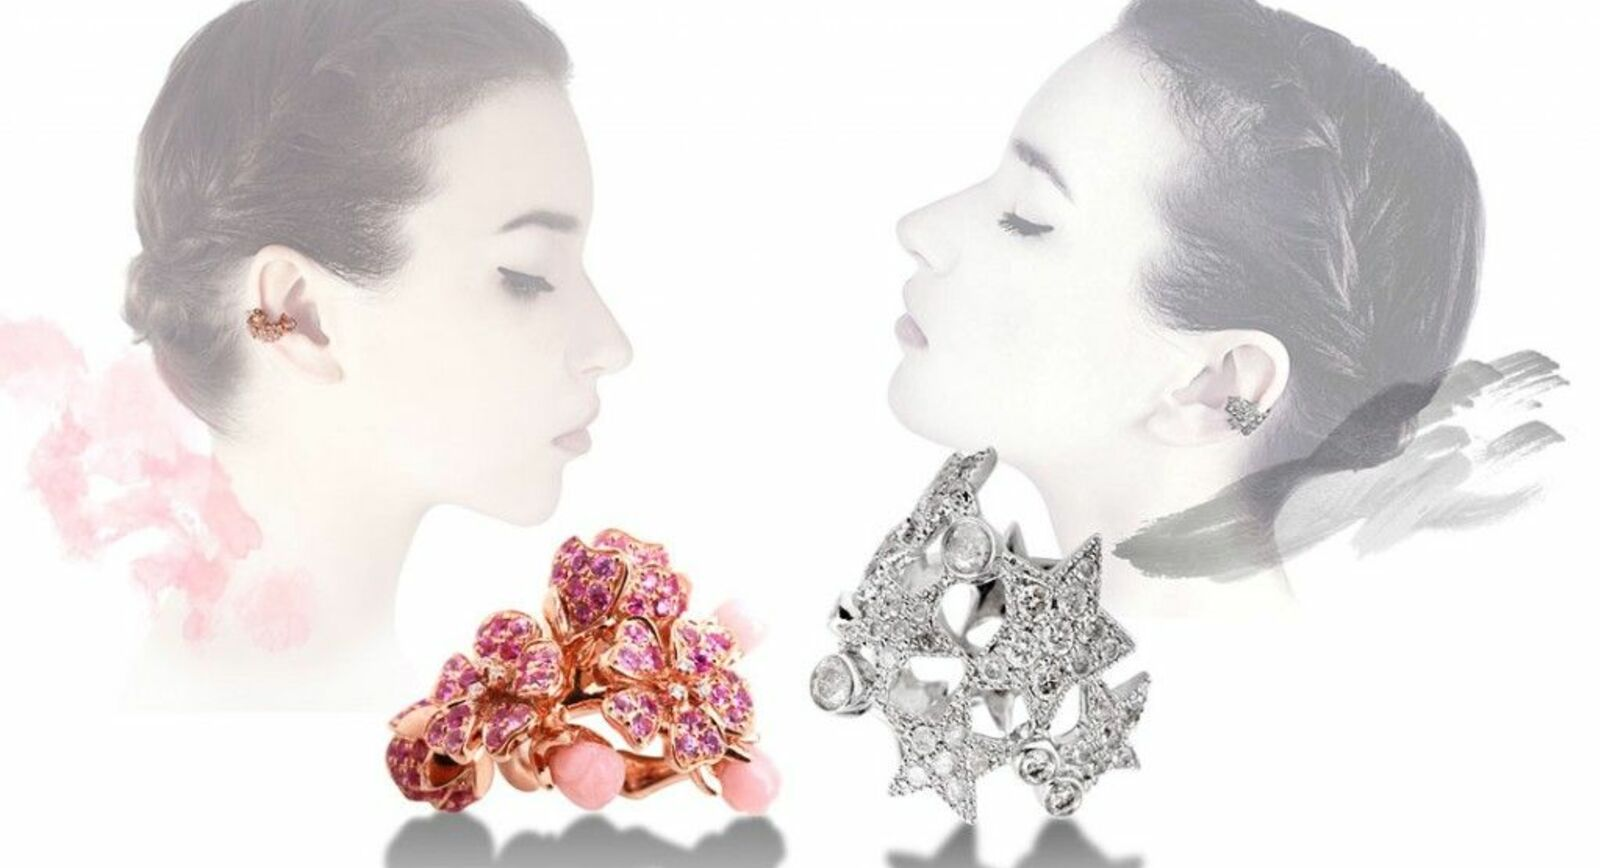 Morphée Joaillerie presents new jewellery at Paris Fashion week